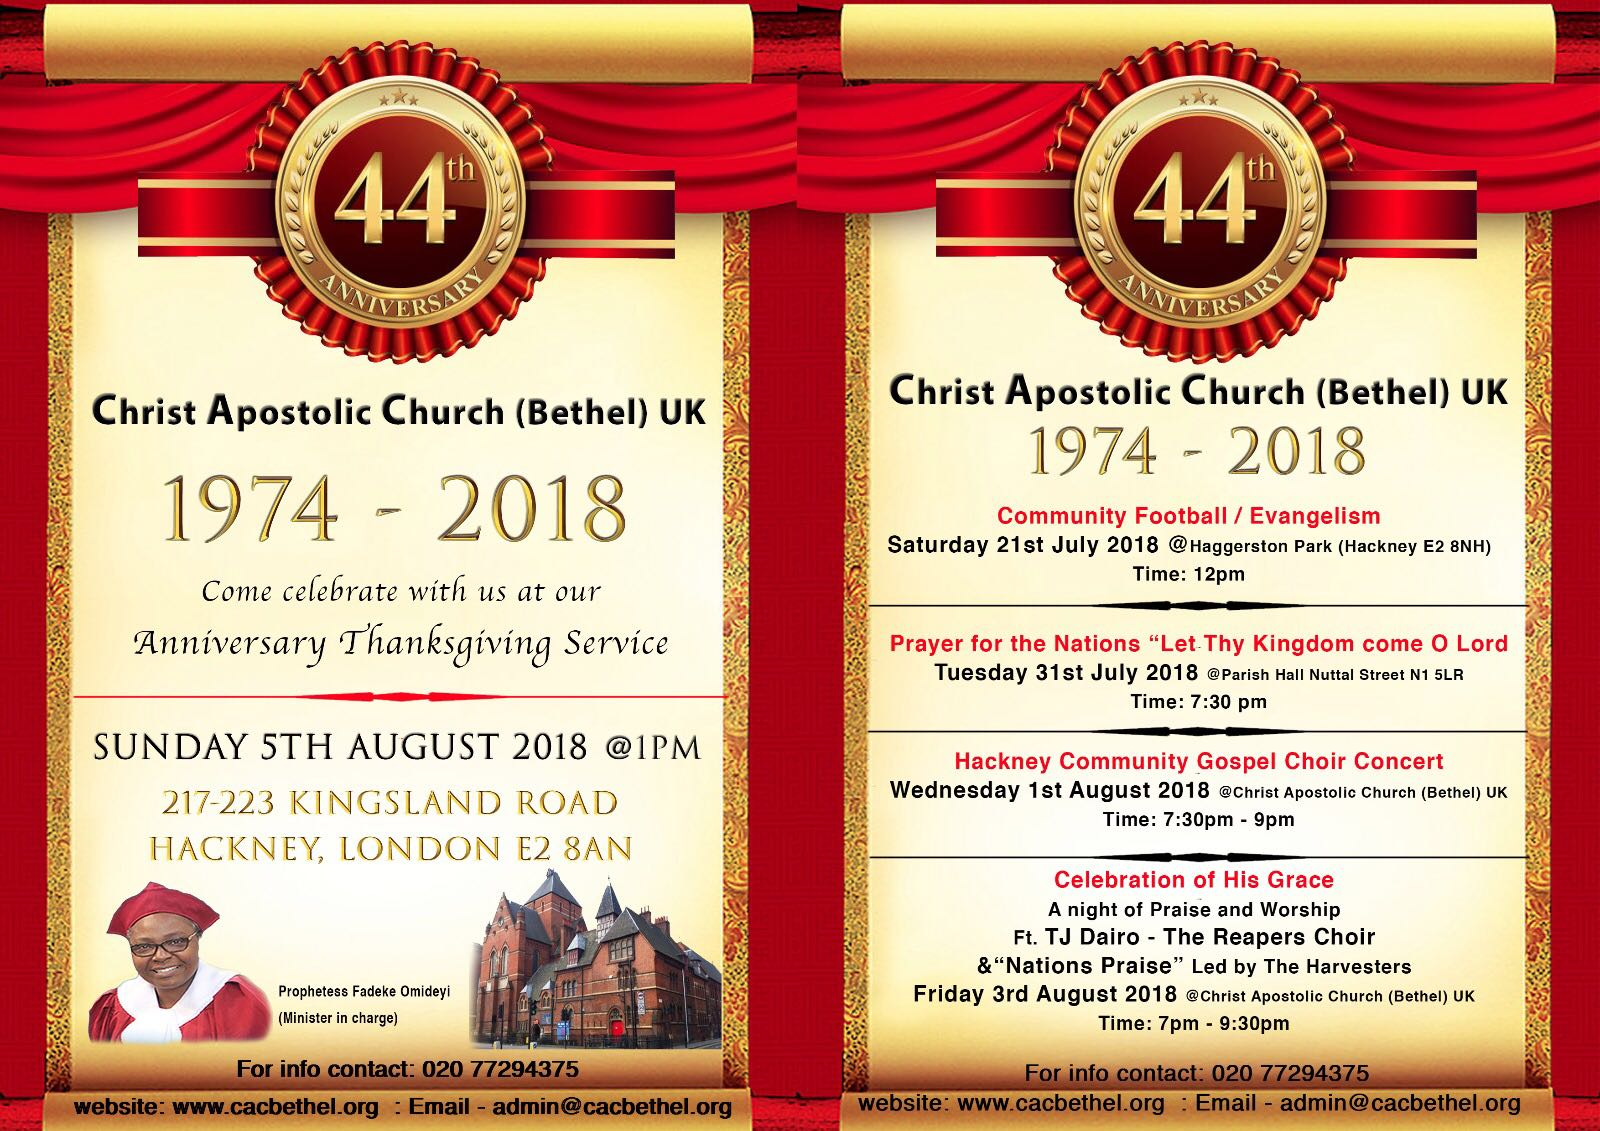 44th Anniversary – Thanksgiving Service – cacbethel org